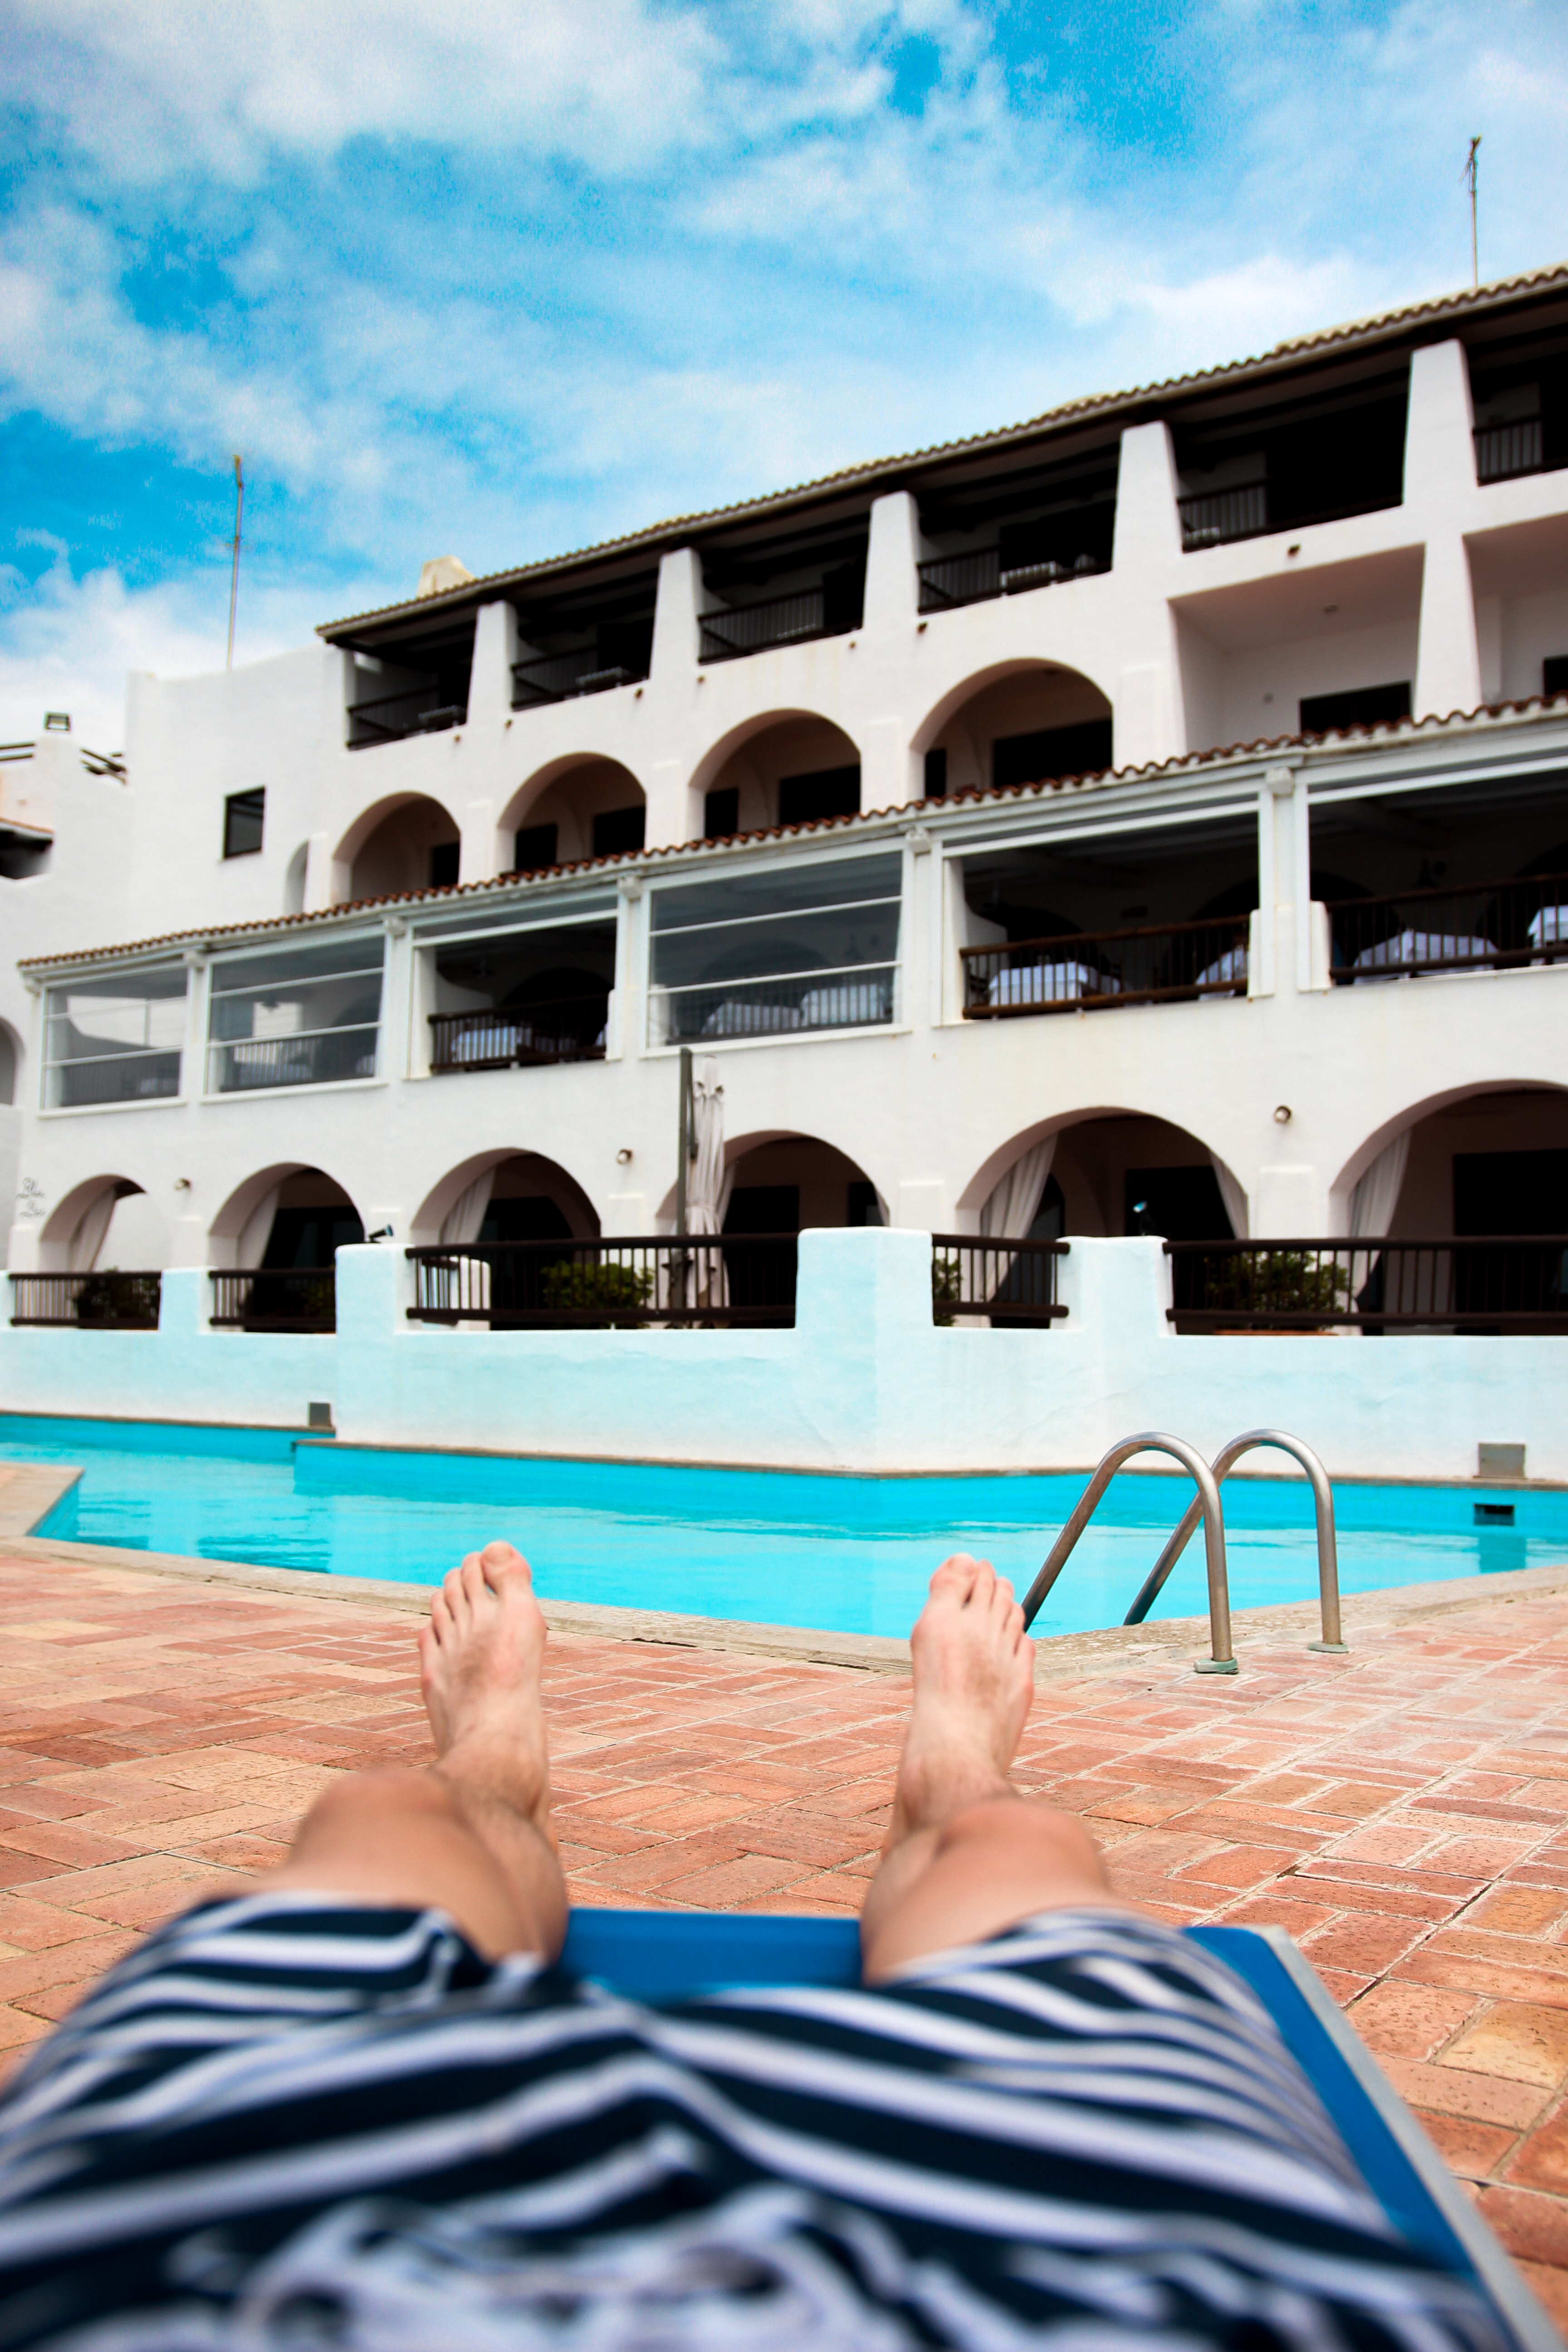 person lying on outdoor lounge chair near swimming pool